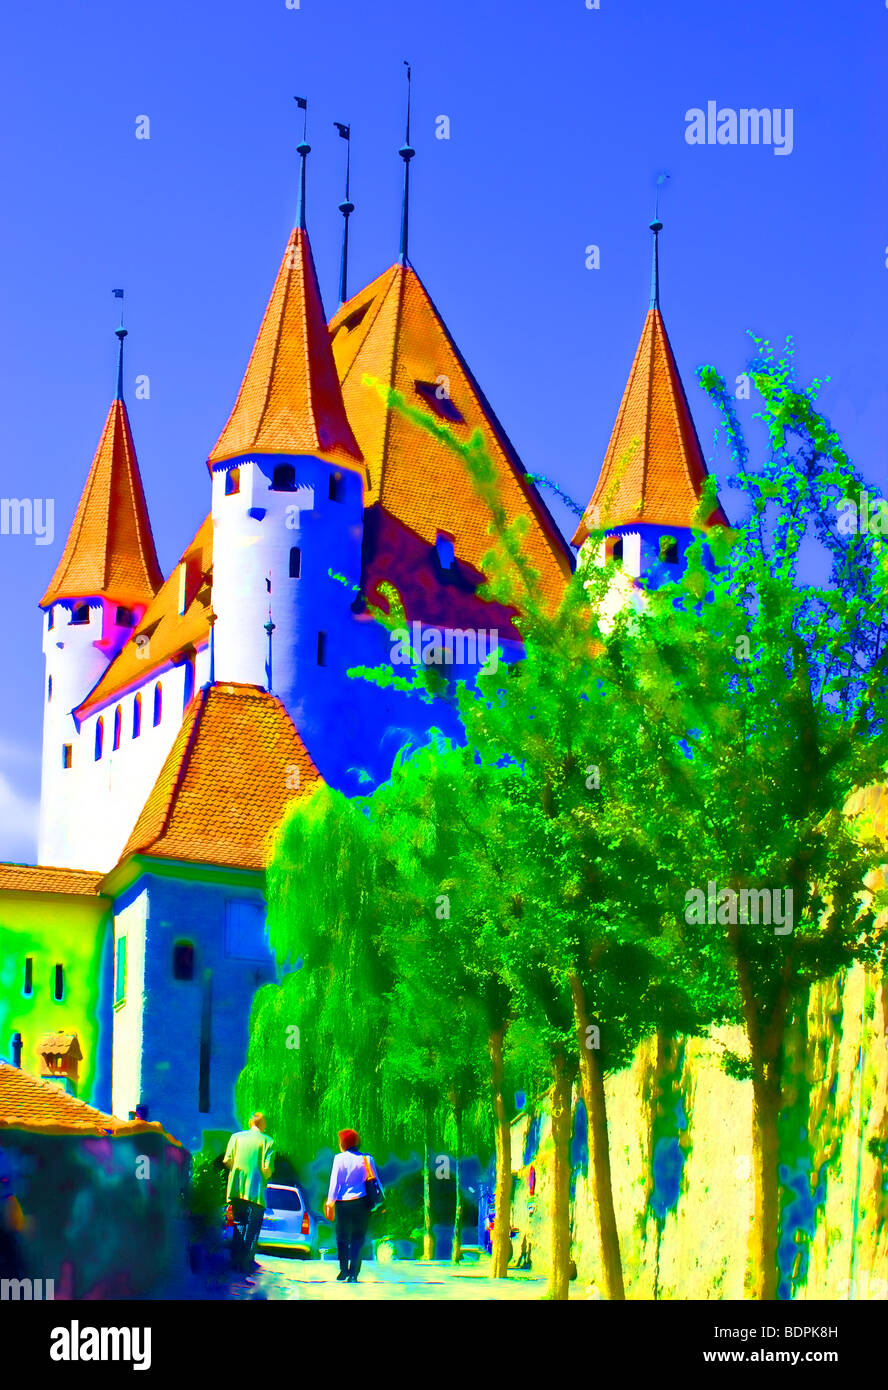 Picture, cartoon-like city of Thun - Switzerland. The towers of the ancient castle of Thun. - Stock Image